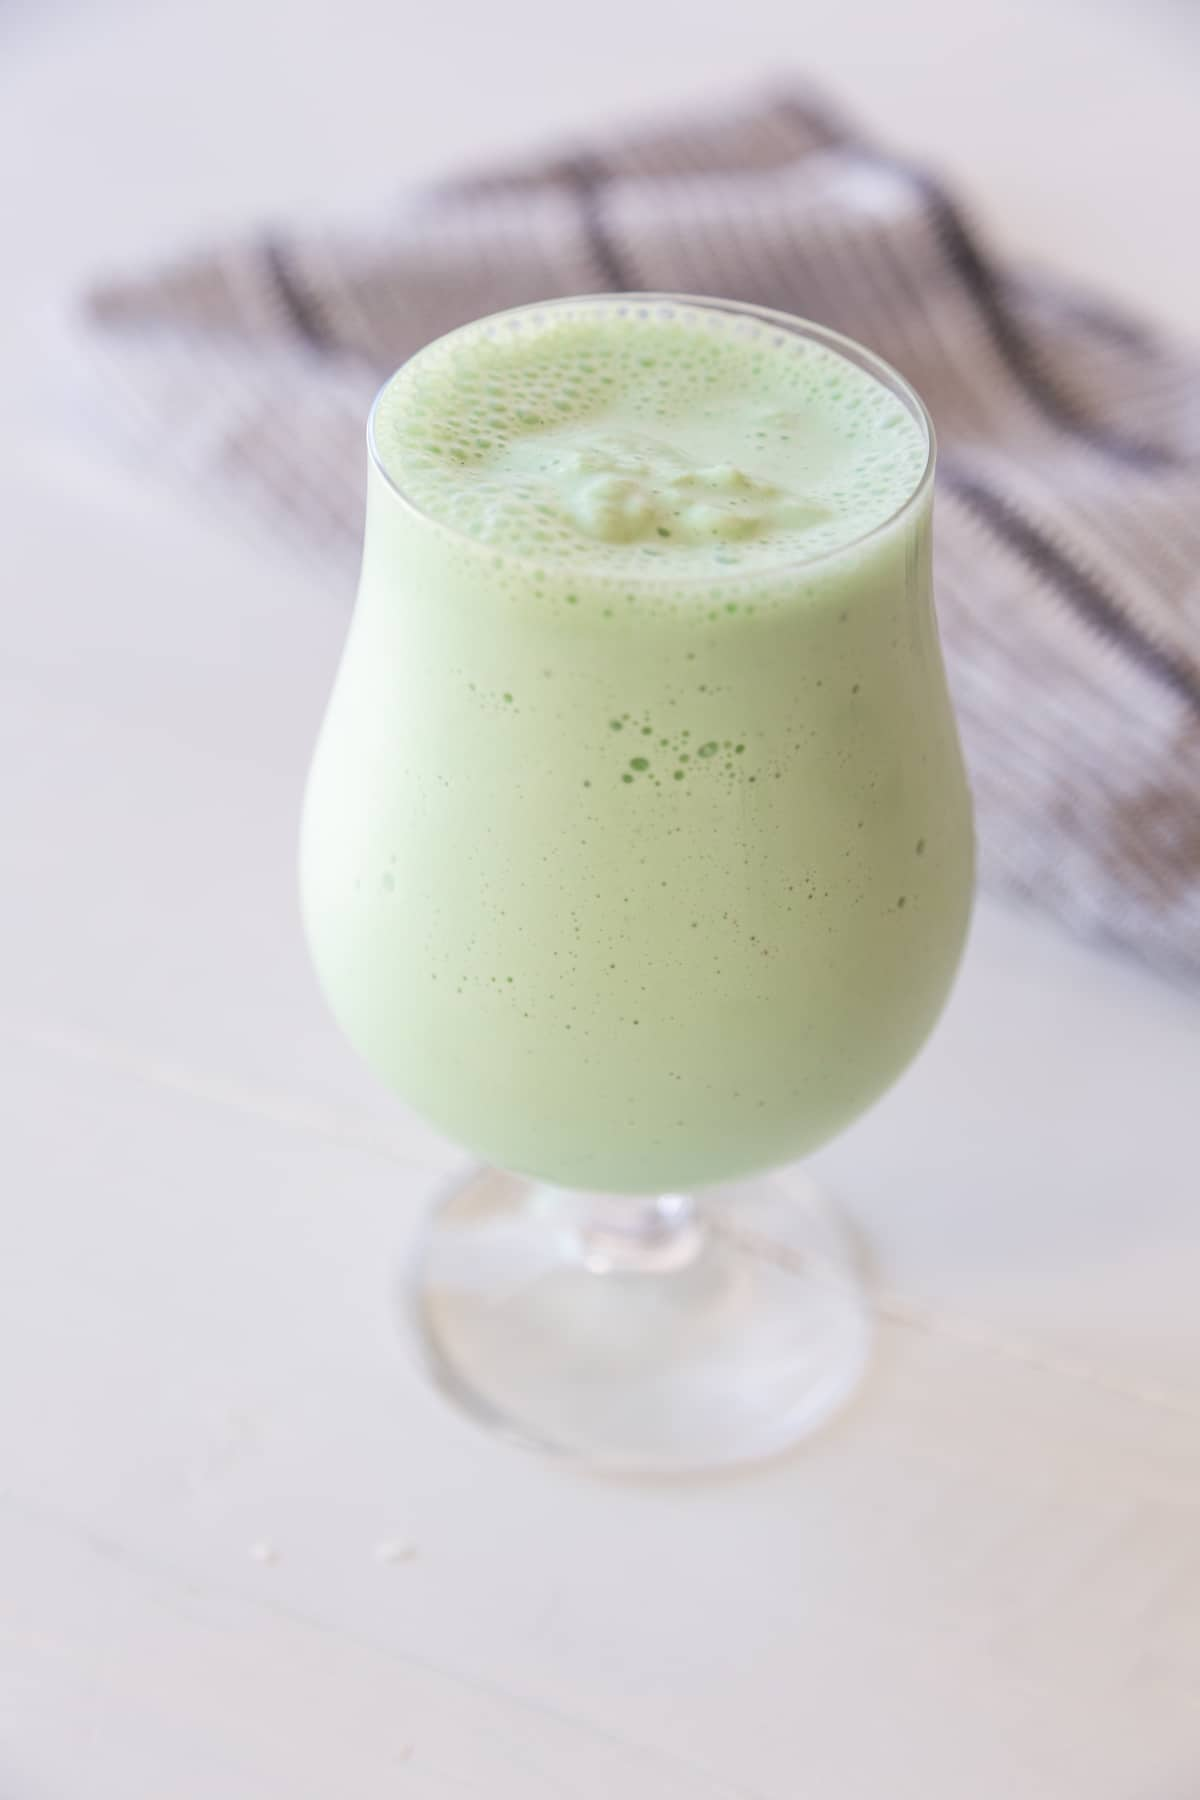 A green milkshake in a glass with a white and black towel behind the glass.